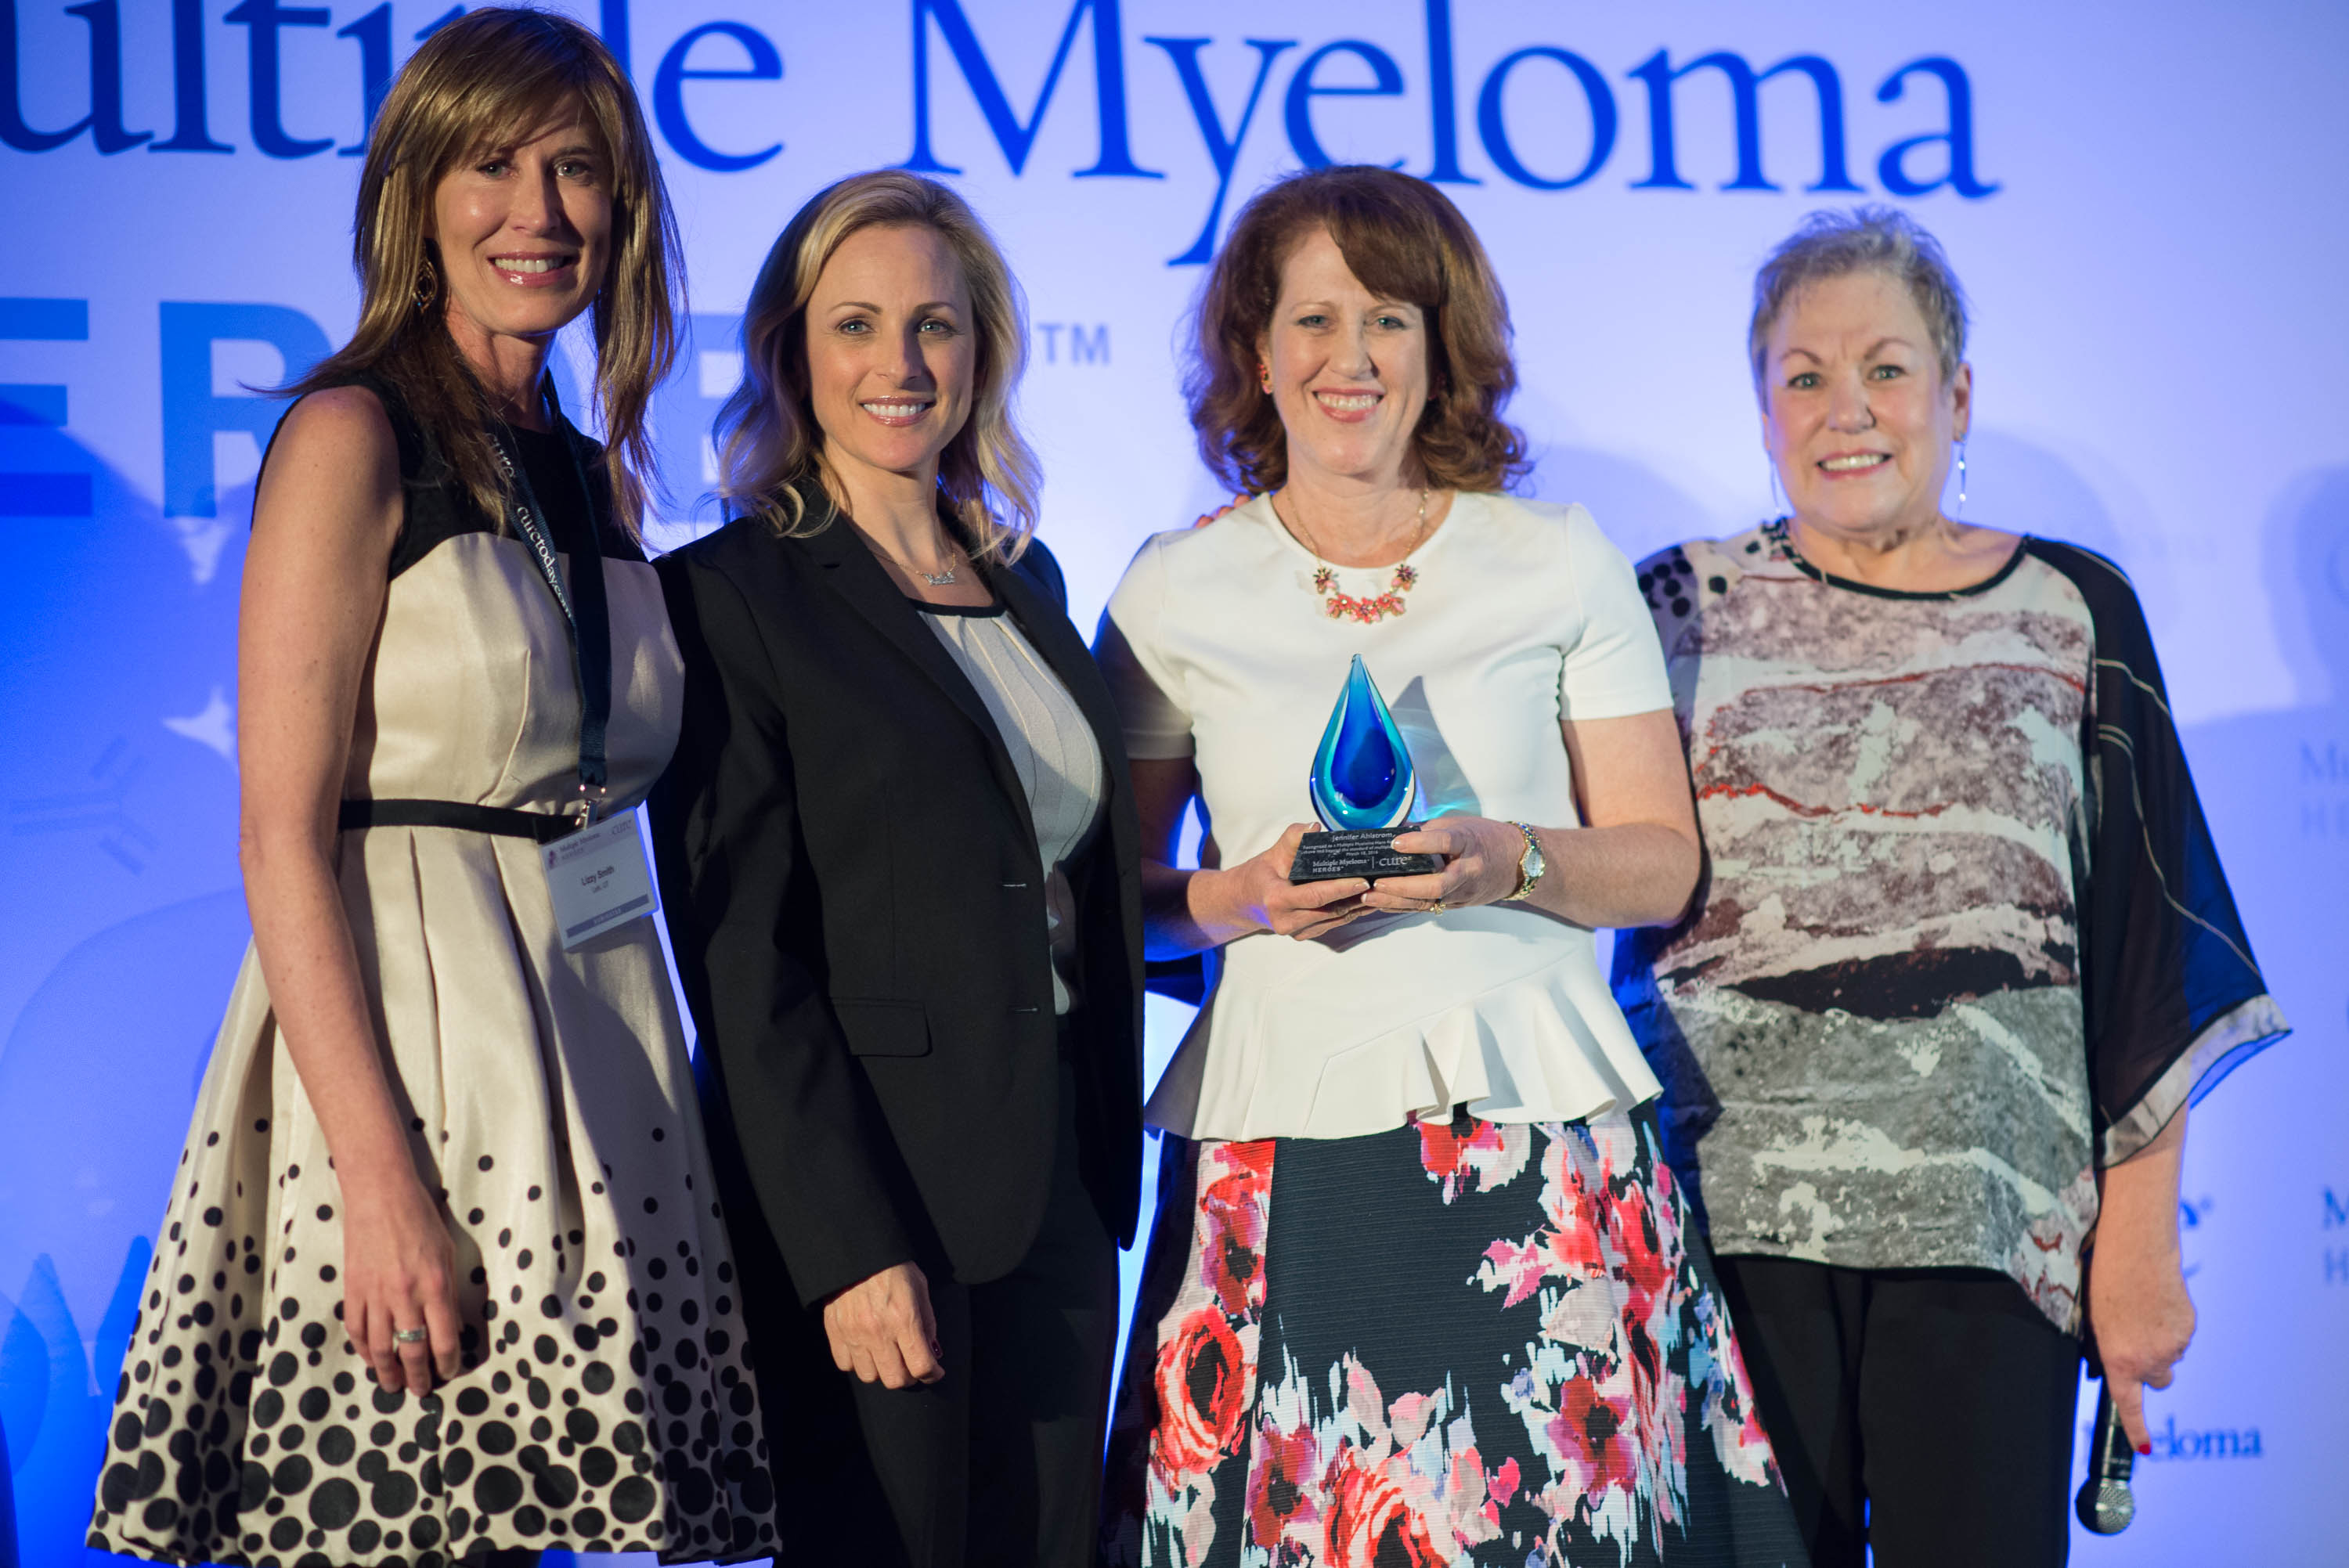 In her keynote speech, TV and movie actress Marlee Matlin (second from left) spoke about her father's diagnosis with multiple myeloma, dealing with adversity by cultivating a good sense of humor, and more.